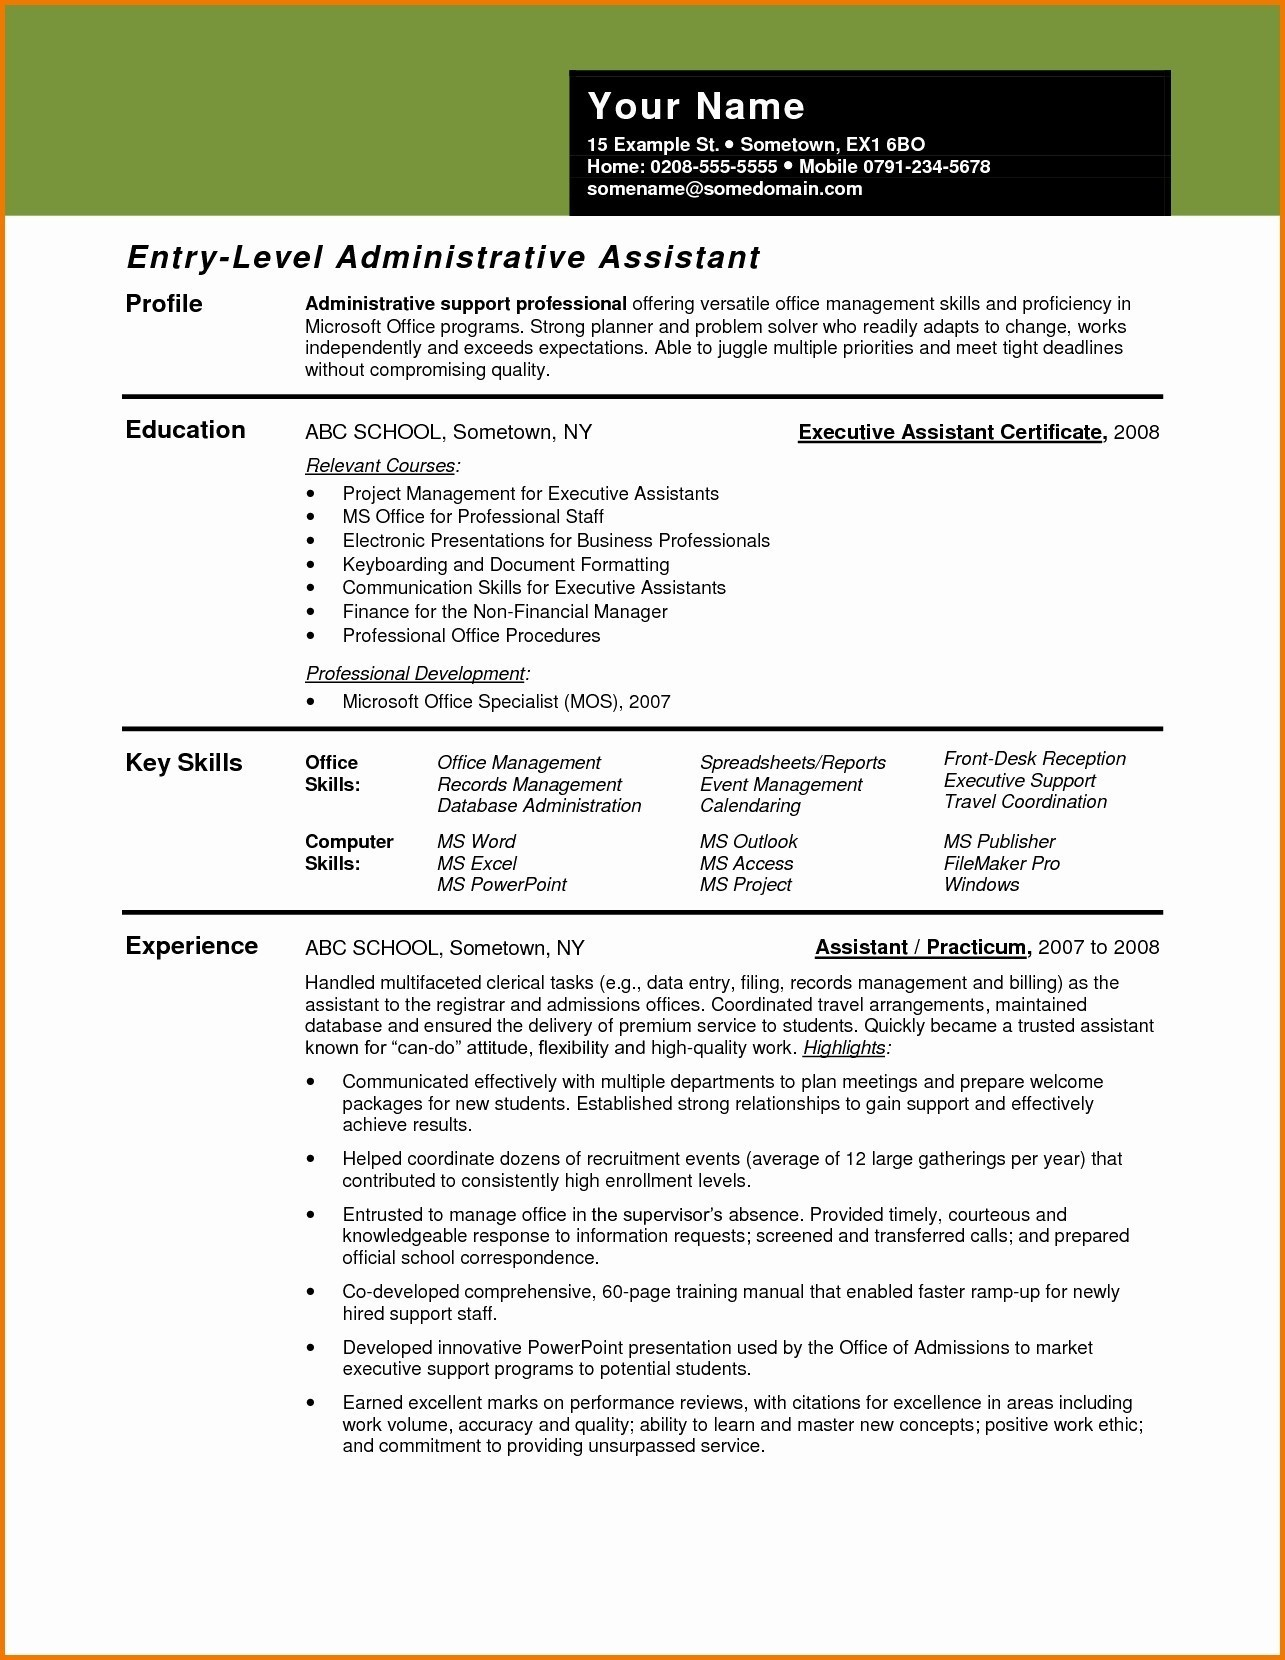 Executive assistant Resume Template Word - 17 Management Resume Templates